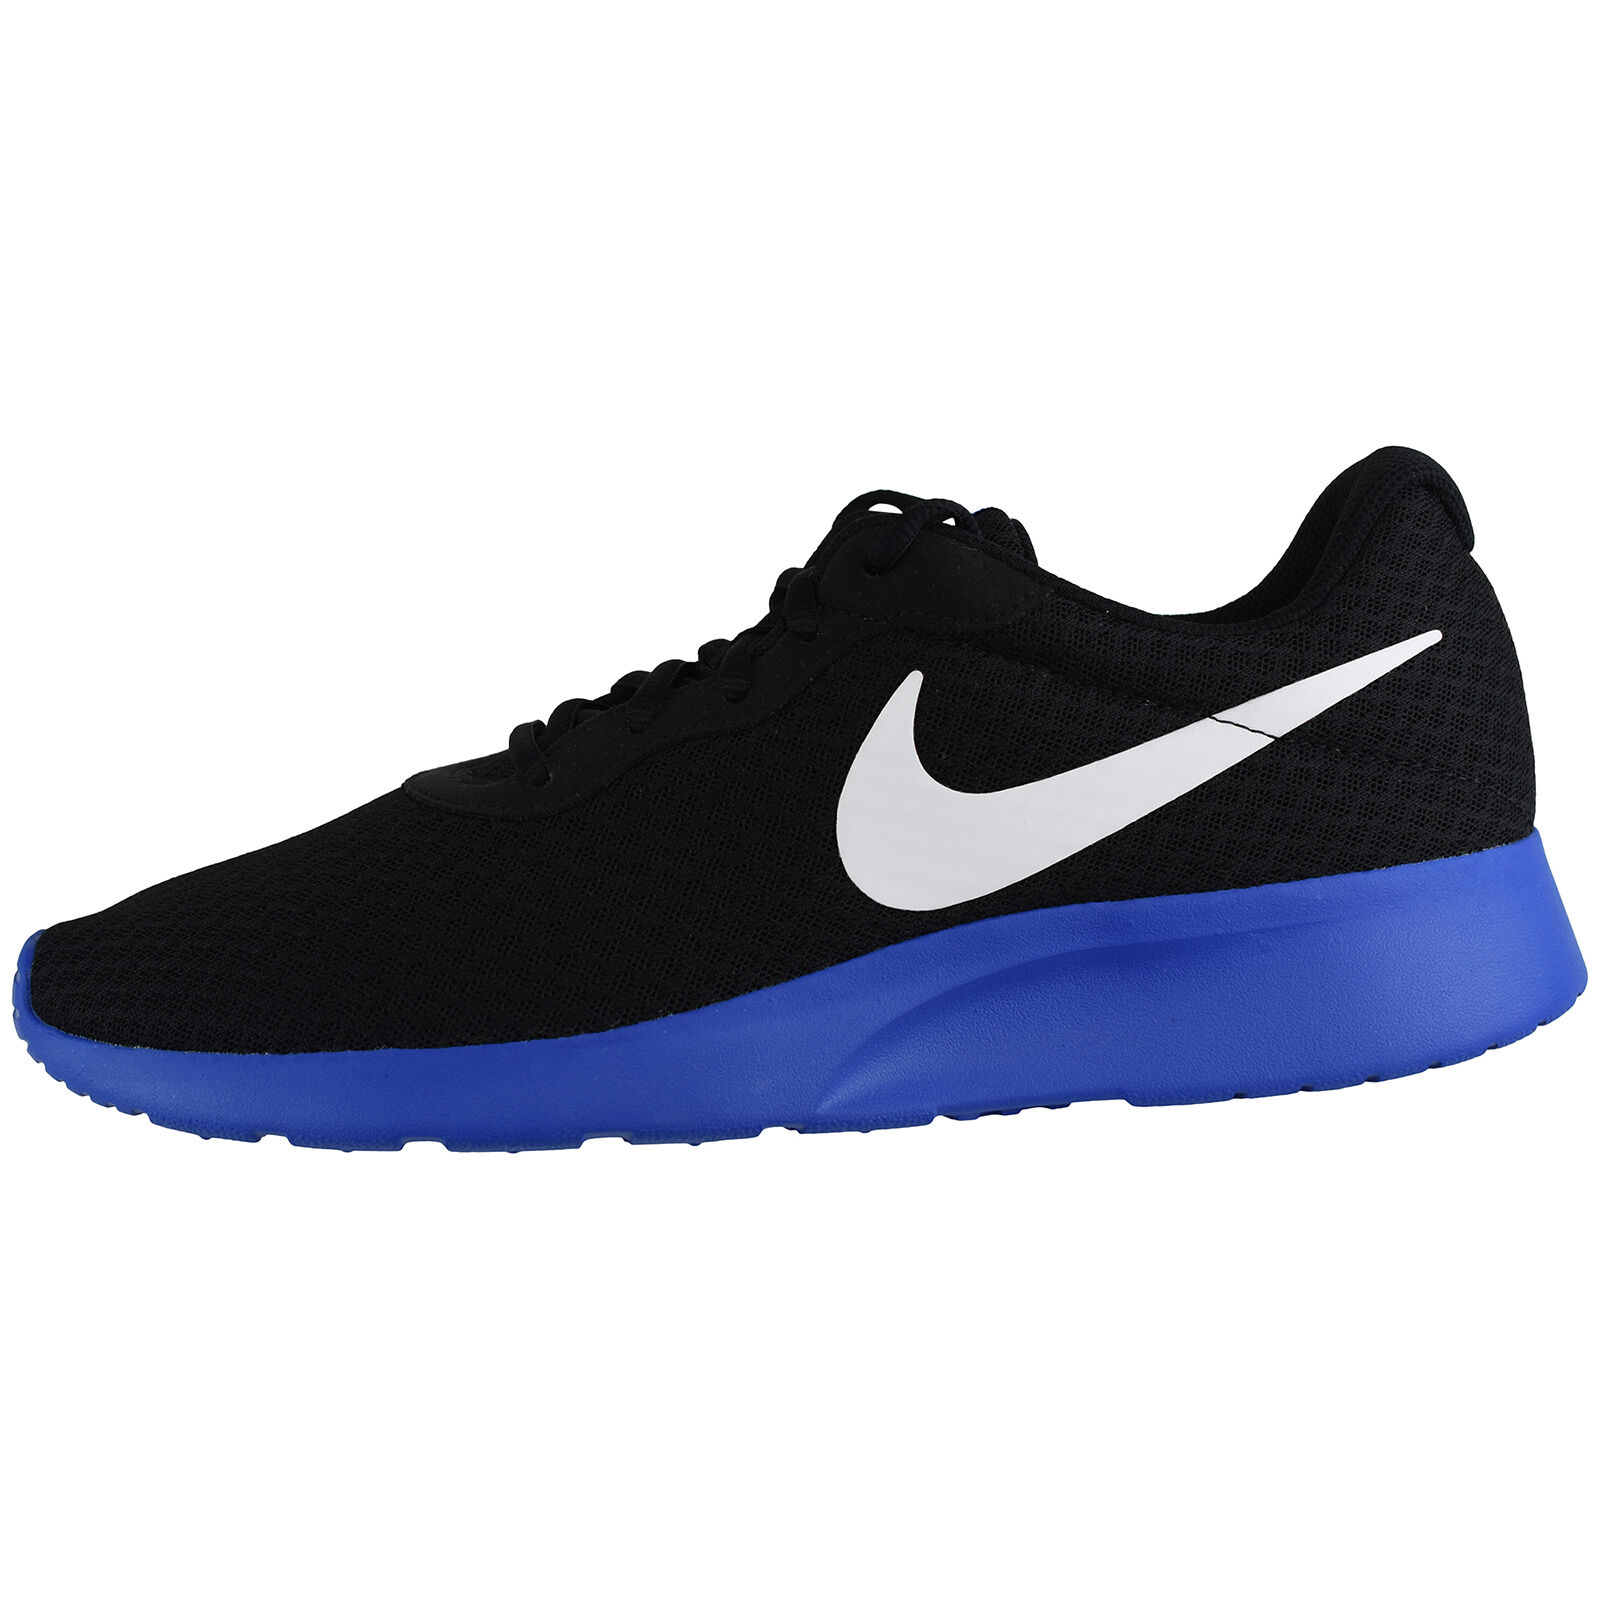 Nike Tanjun 812654-002 Lifestyle Running Leisure Sneakers Running Shoes